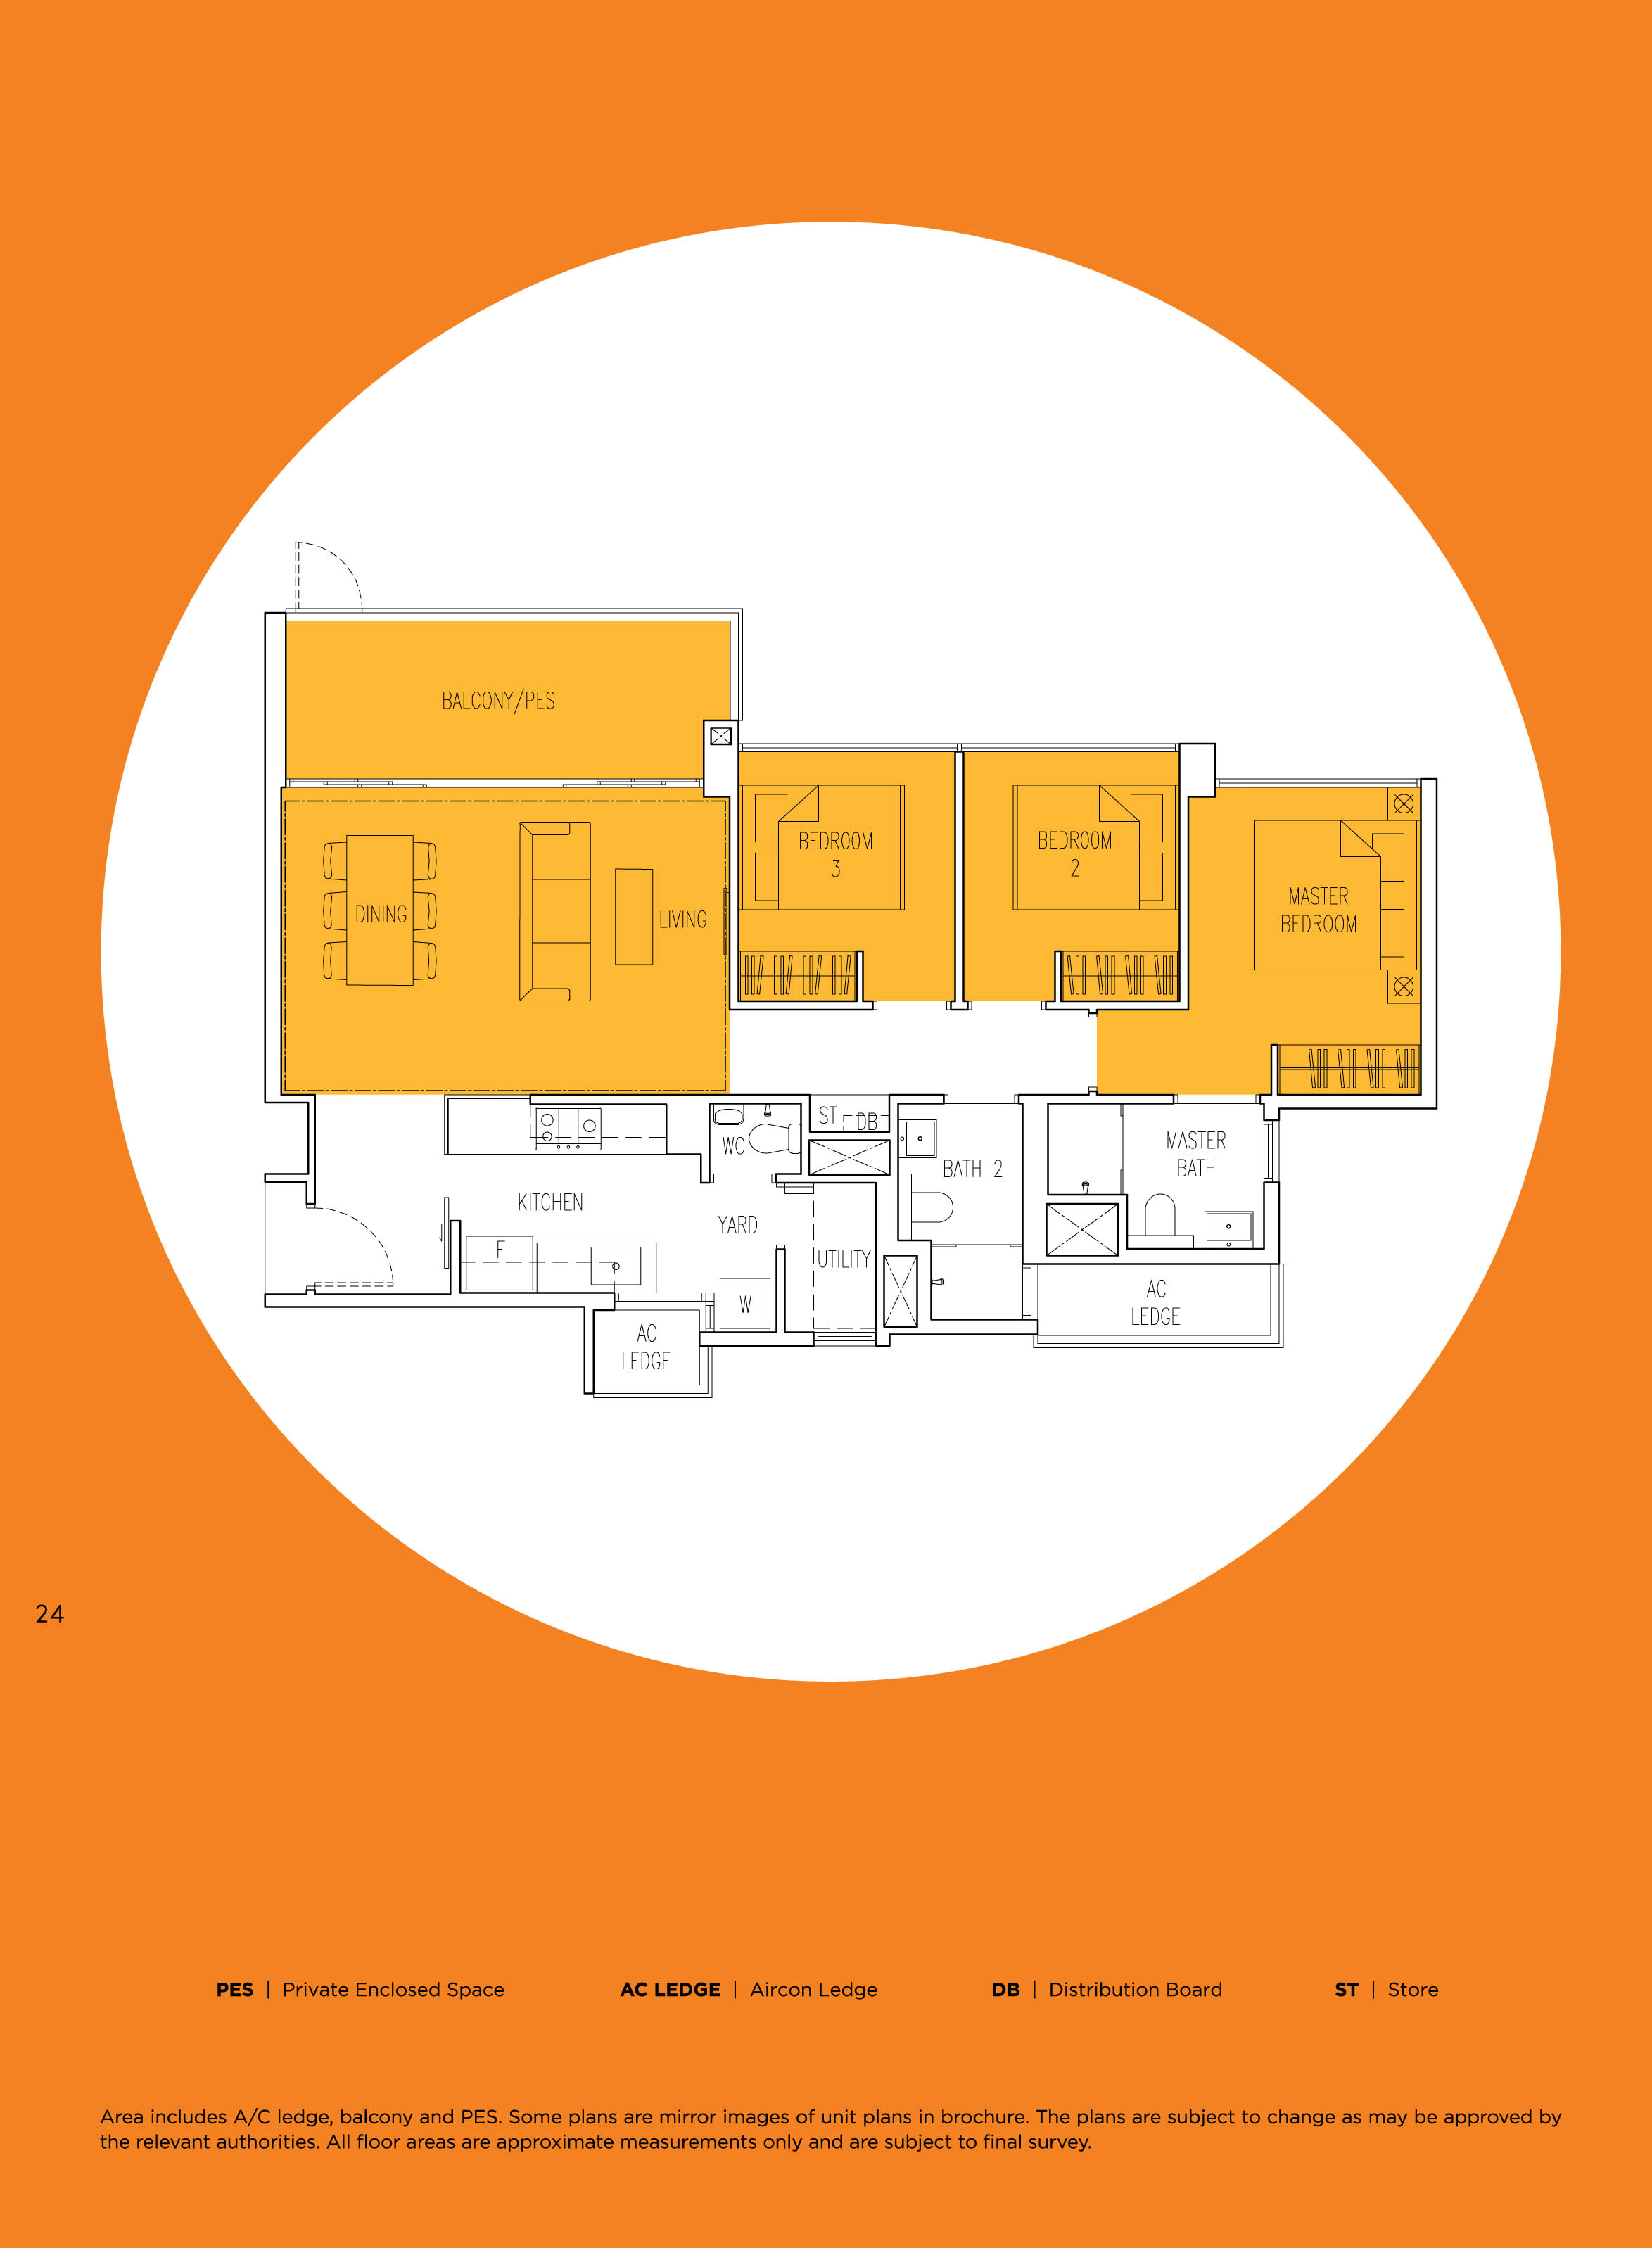 vista_FloorPlan-2